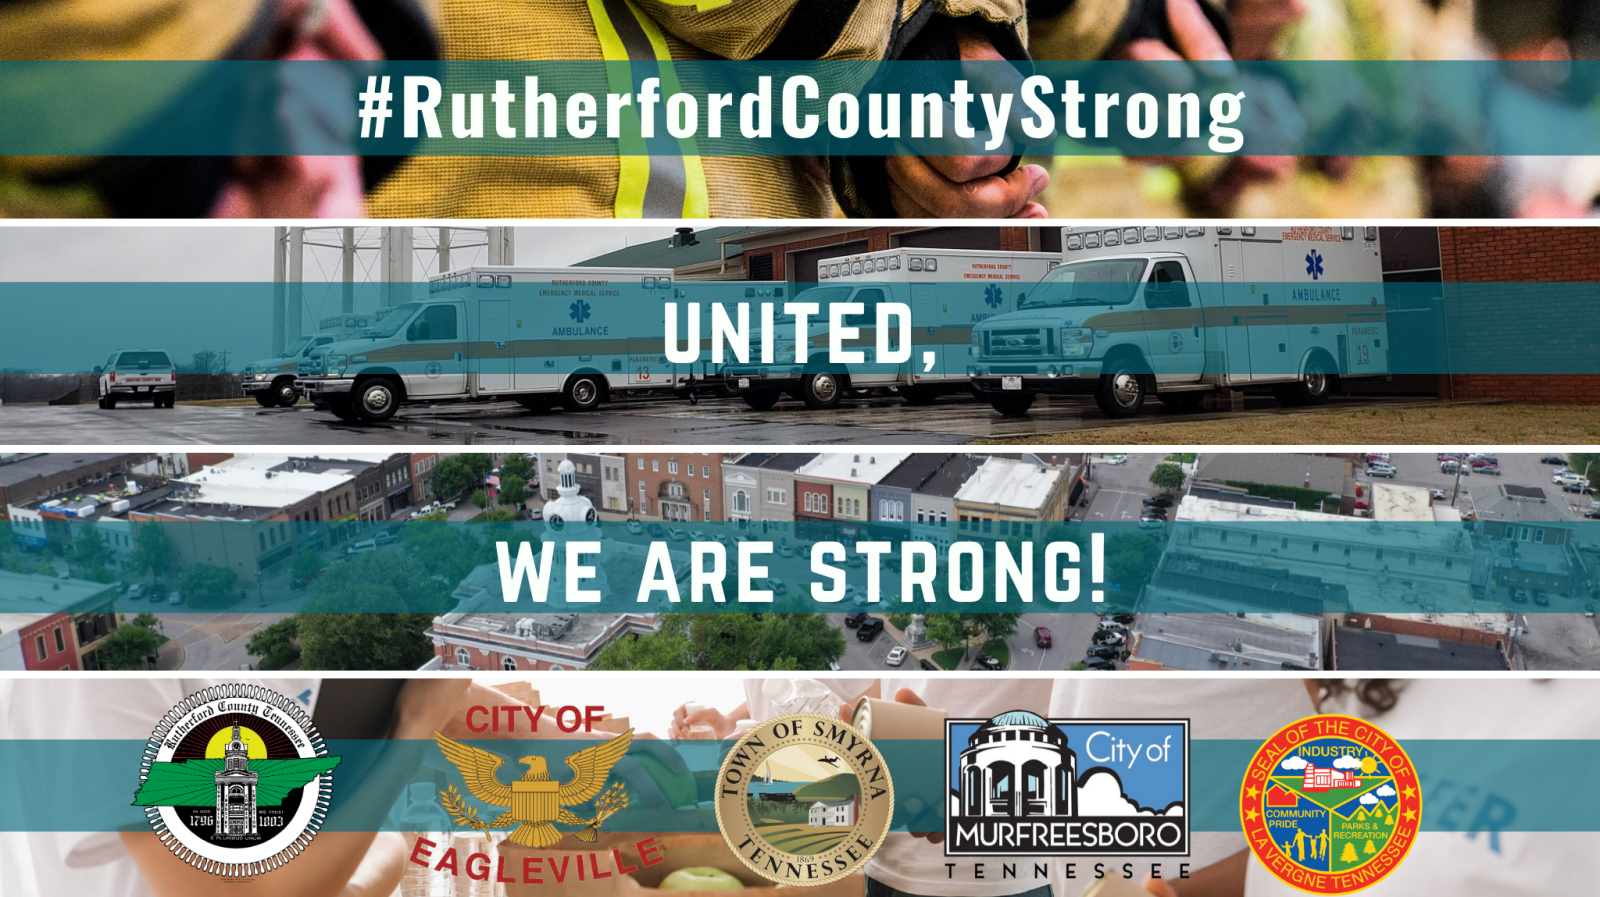 #RutherfordCountyStrong